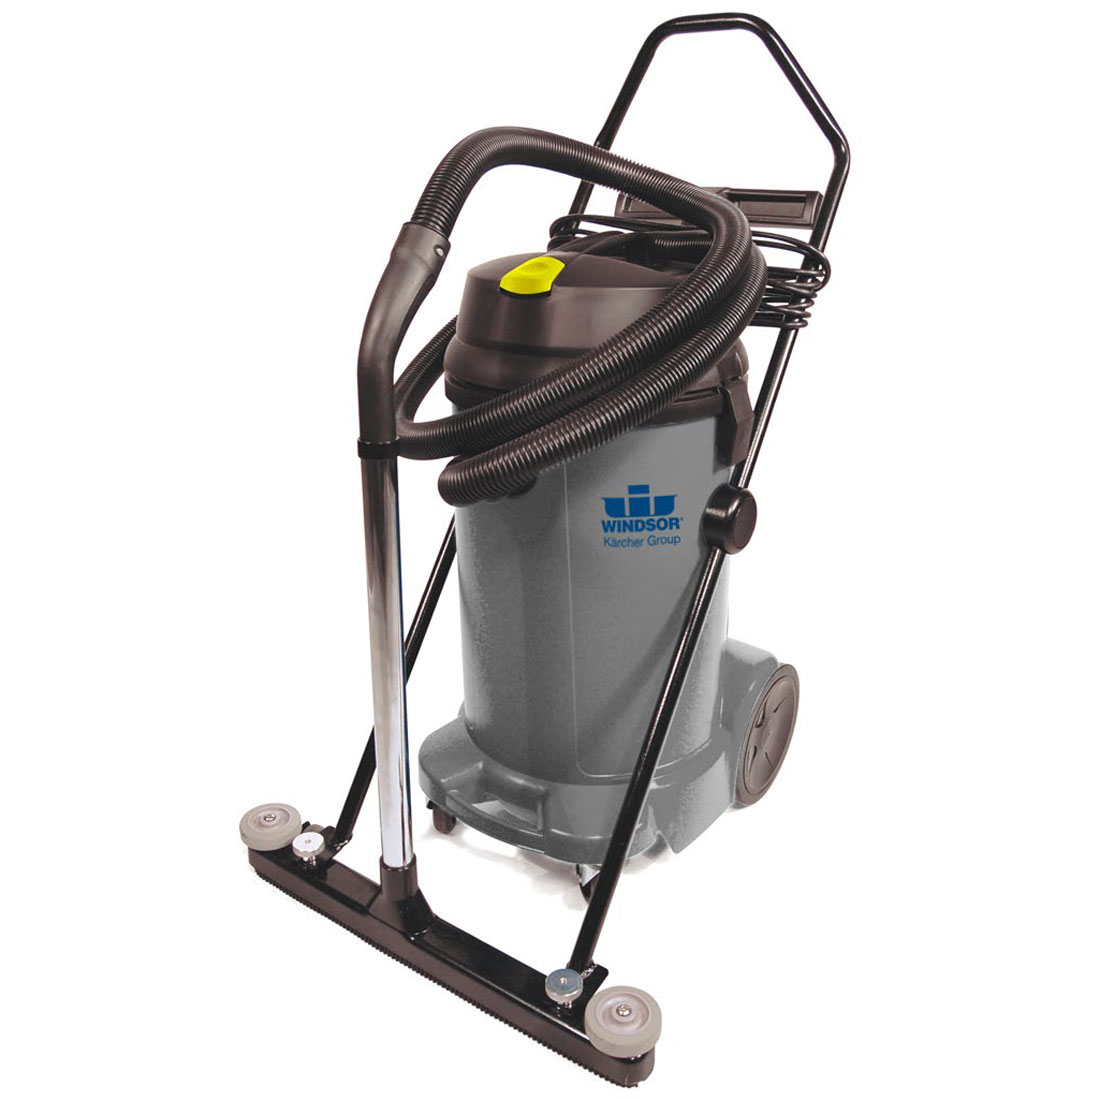 Windsor Recover 12 Gal Wet Dry Shop Vacuum 9.840-844.0 With Front Mount Squeegee FREIGHT INCLUDED 120 Volts